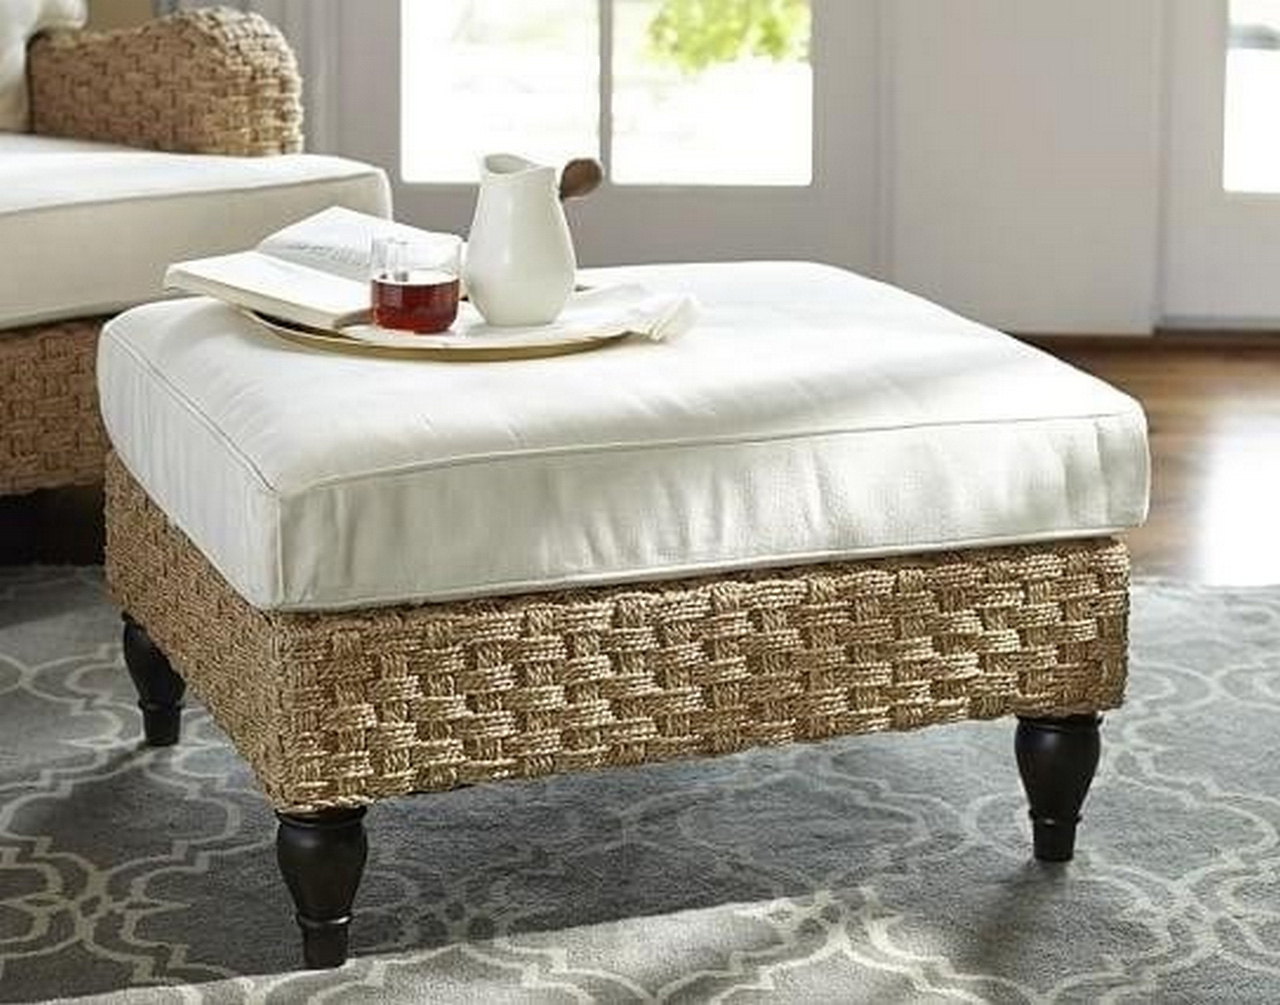 seagrass ottoman-round-seagrass-coffee-table